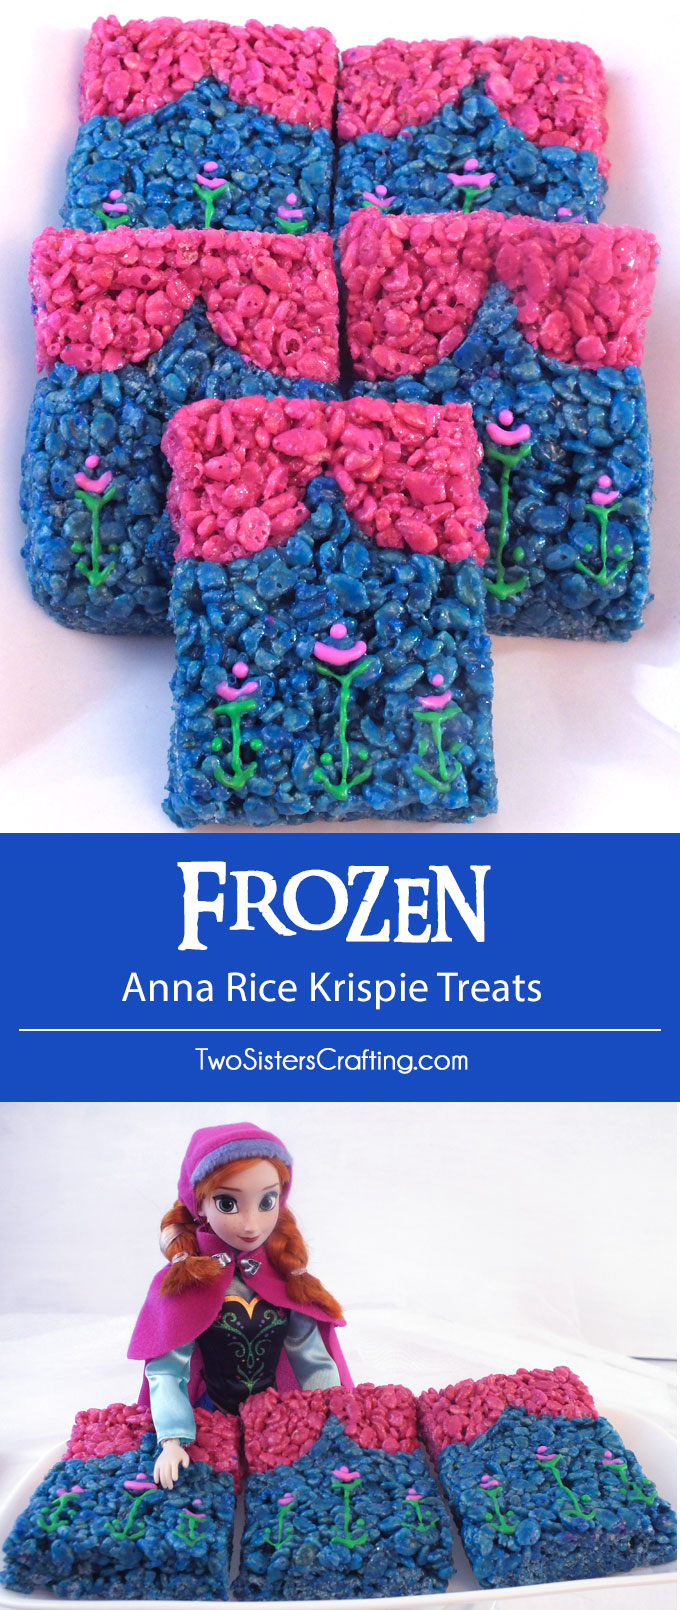 Our sweet and sassy Anna Rice Krispie Treats are adorable, delicious and just right for a Frozen Birthday Party. Easy to make, these colorful Anna themed treats will definitely stand out on a Frozen Dessert Table. Follow us for more fun Frozen Party Ideas.